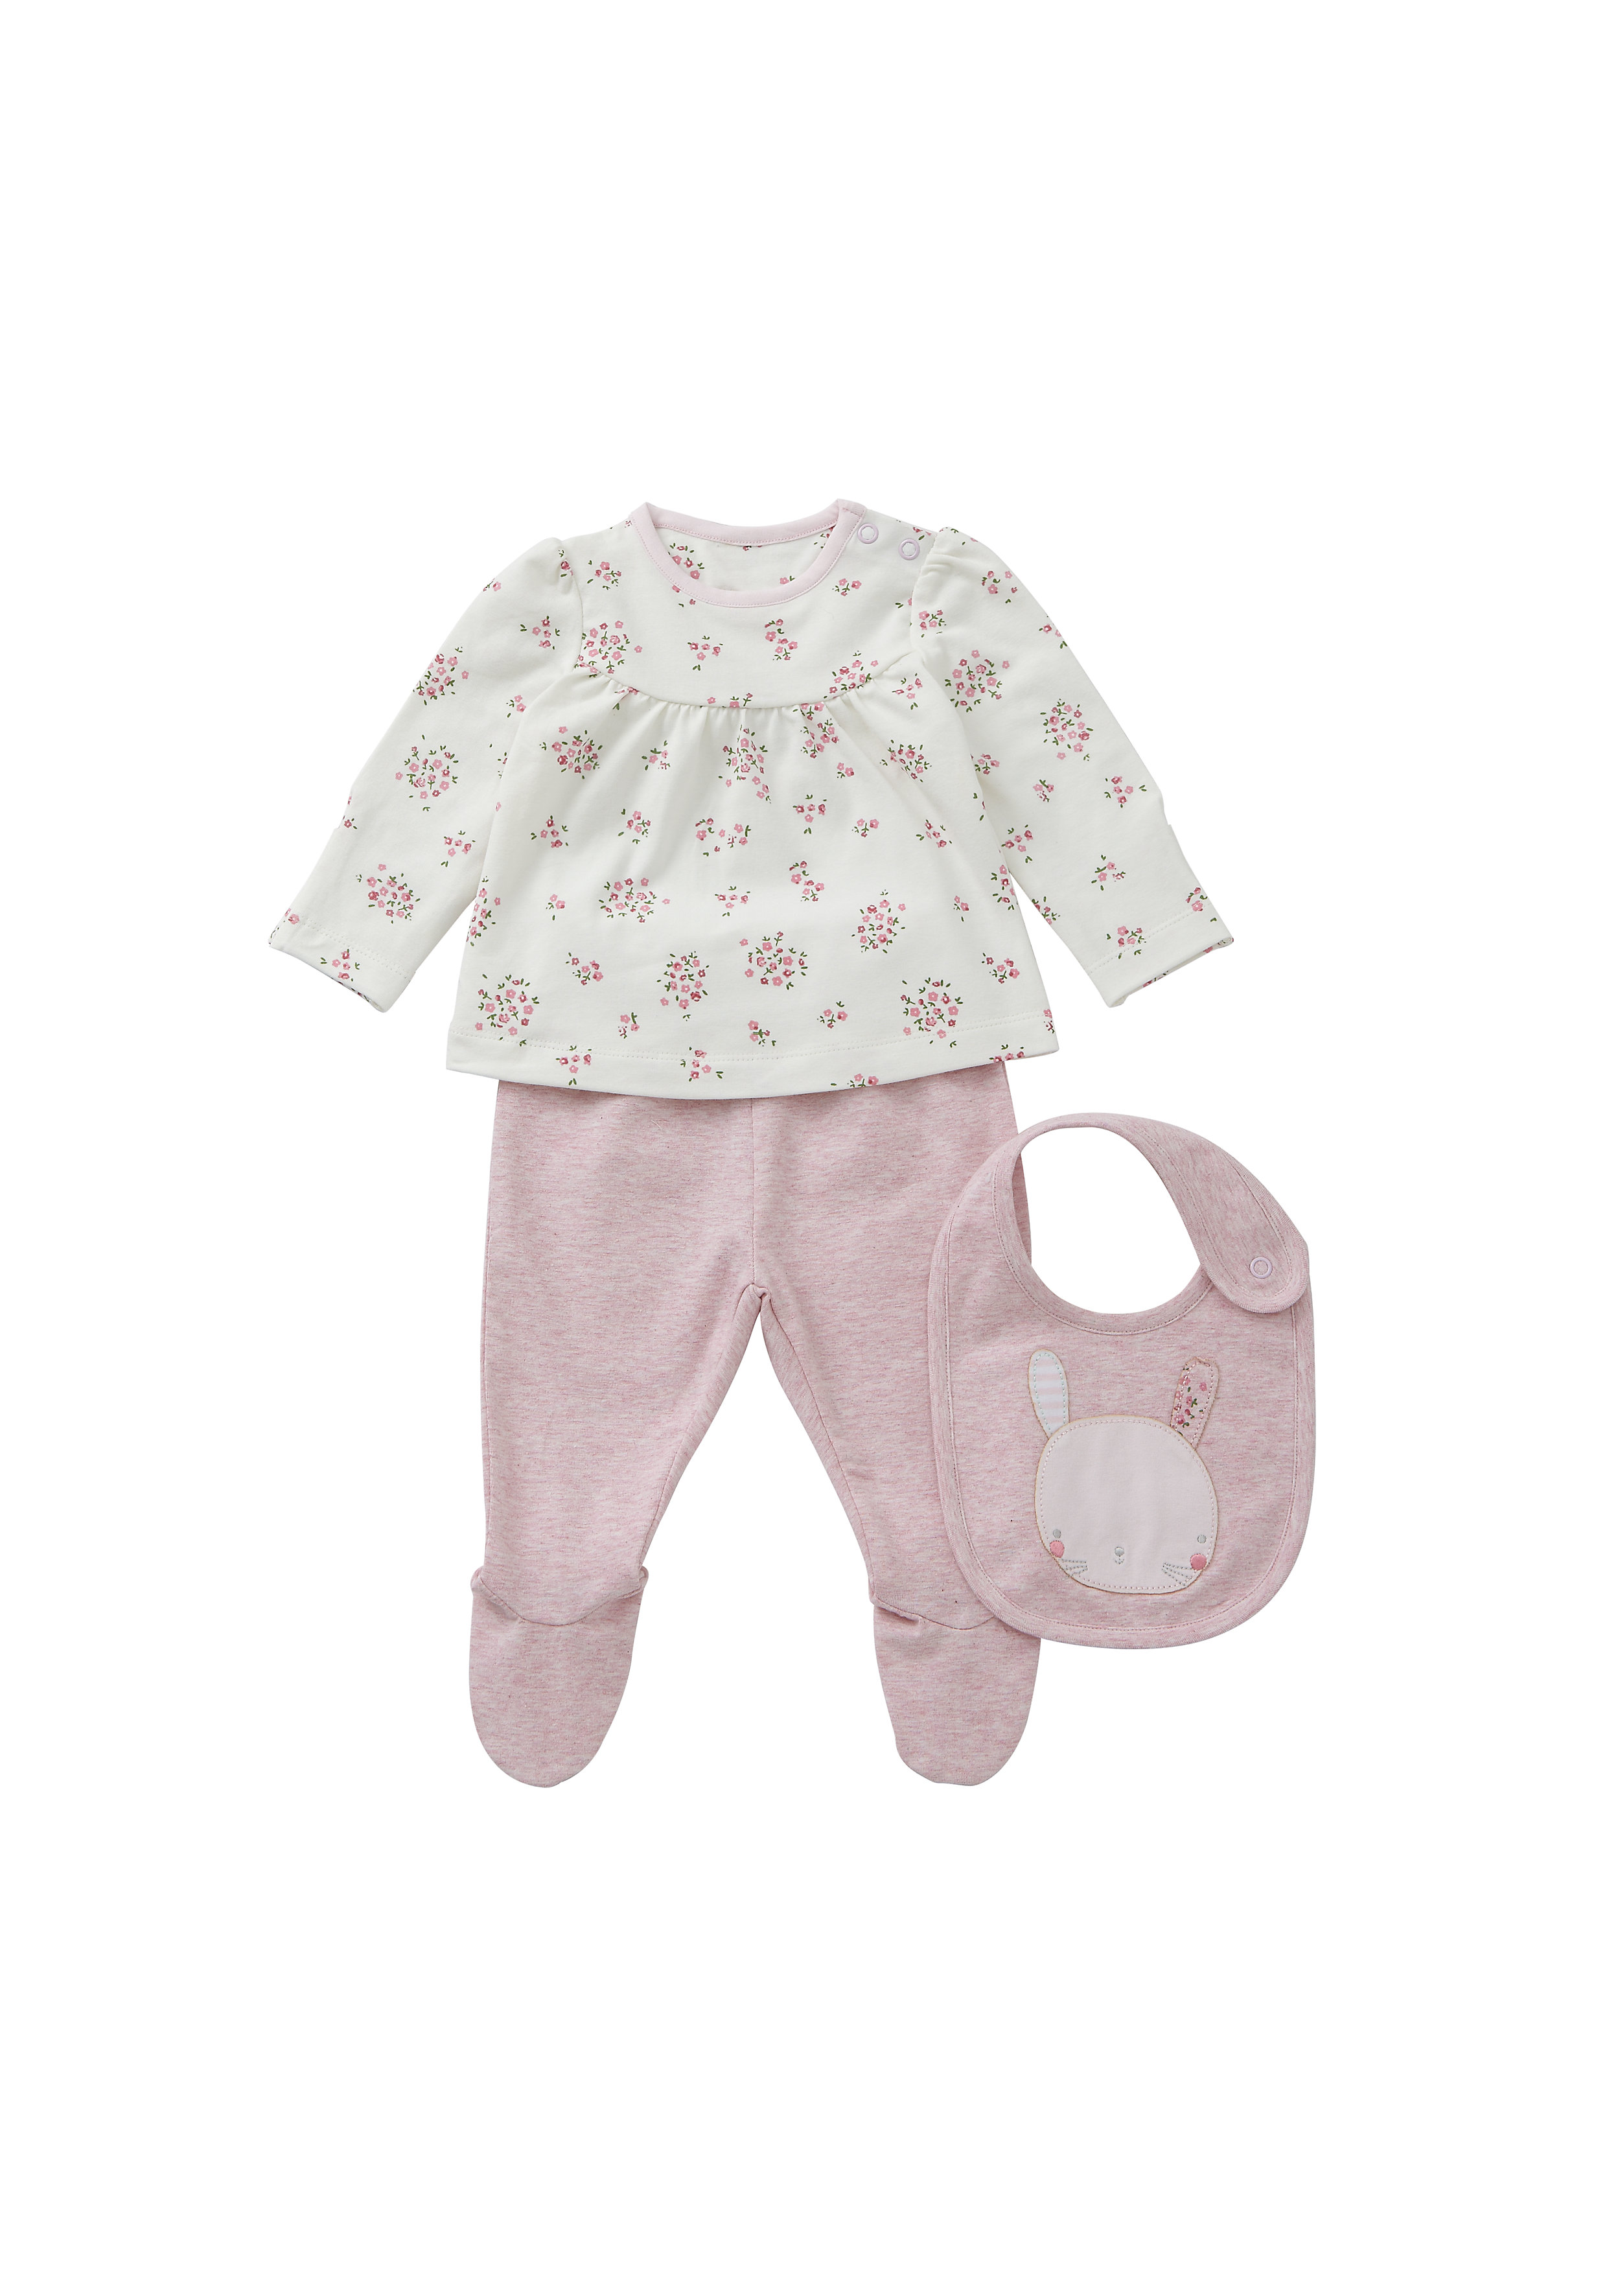 Mothercare | Girls Full Sleeves 3 Piece Set Floral Print - Pink